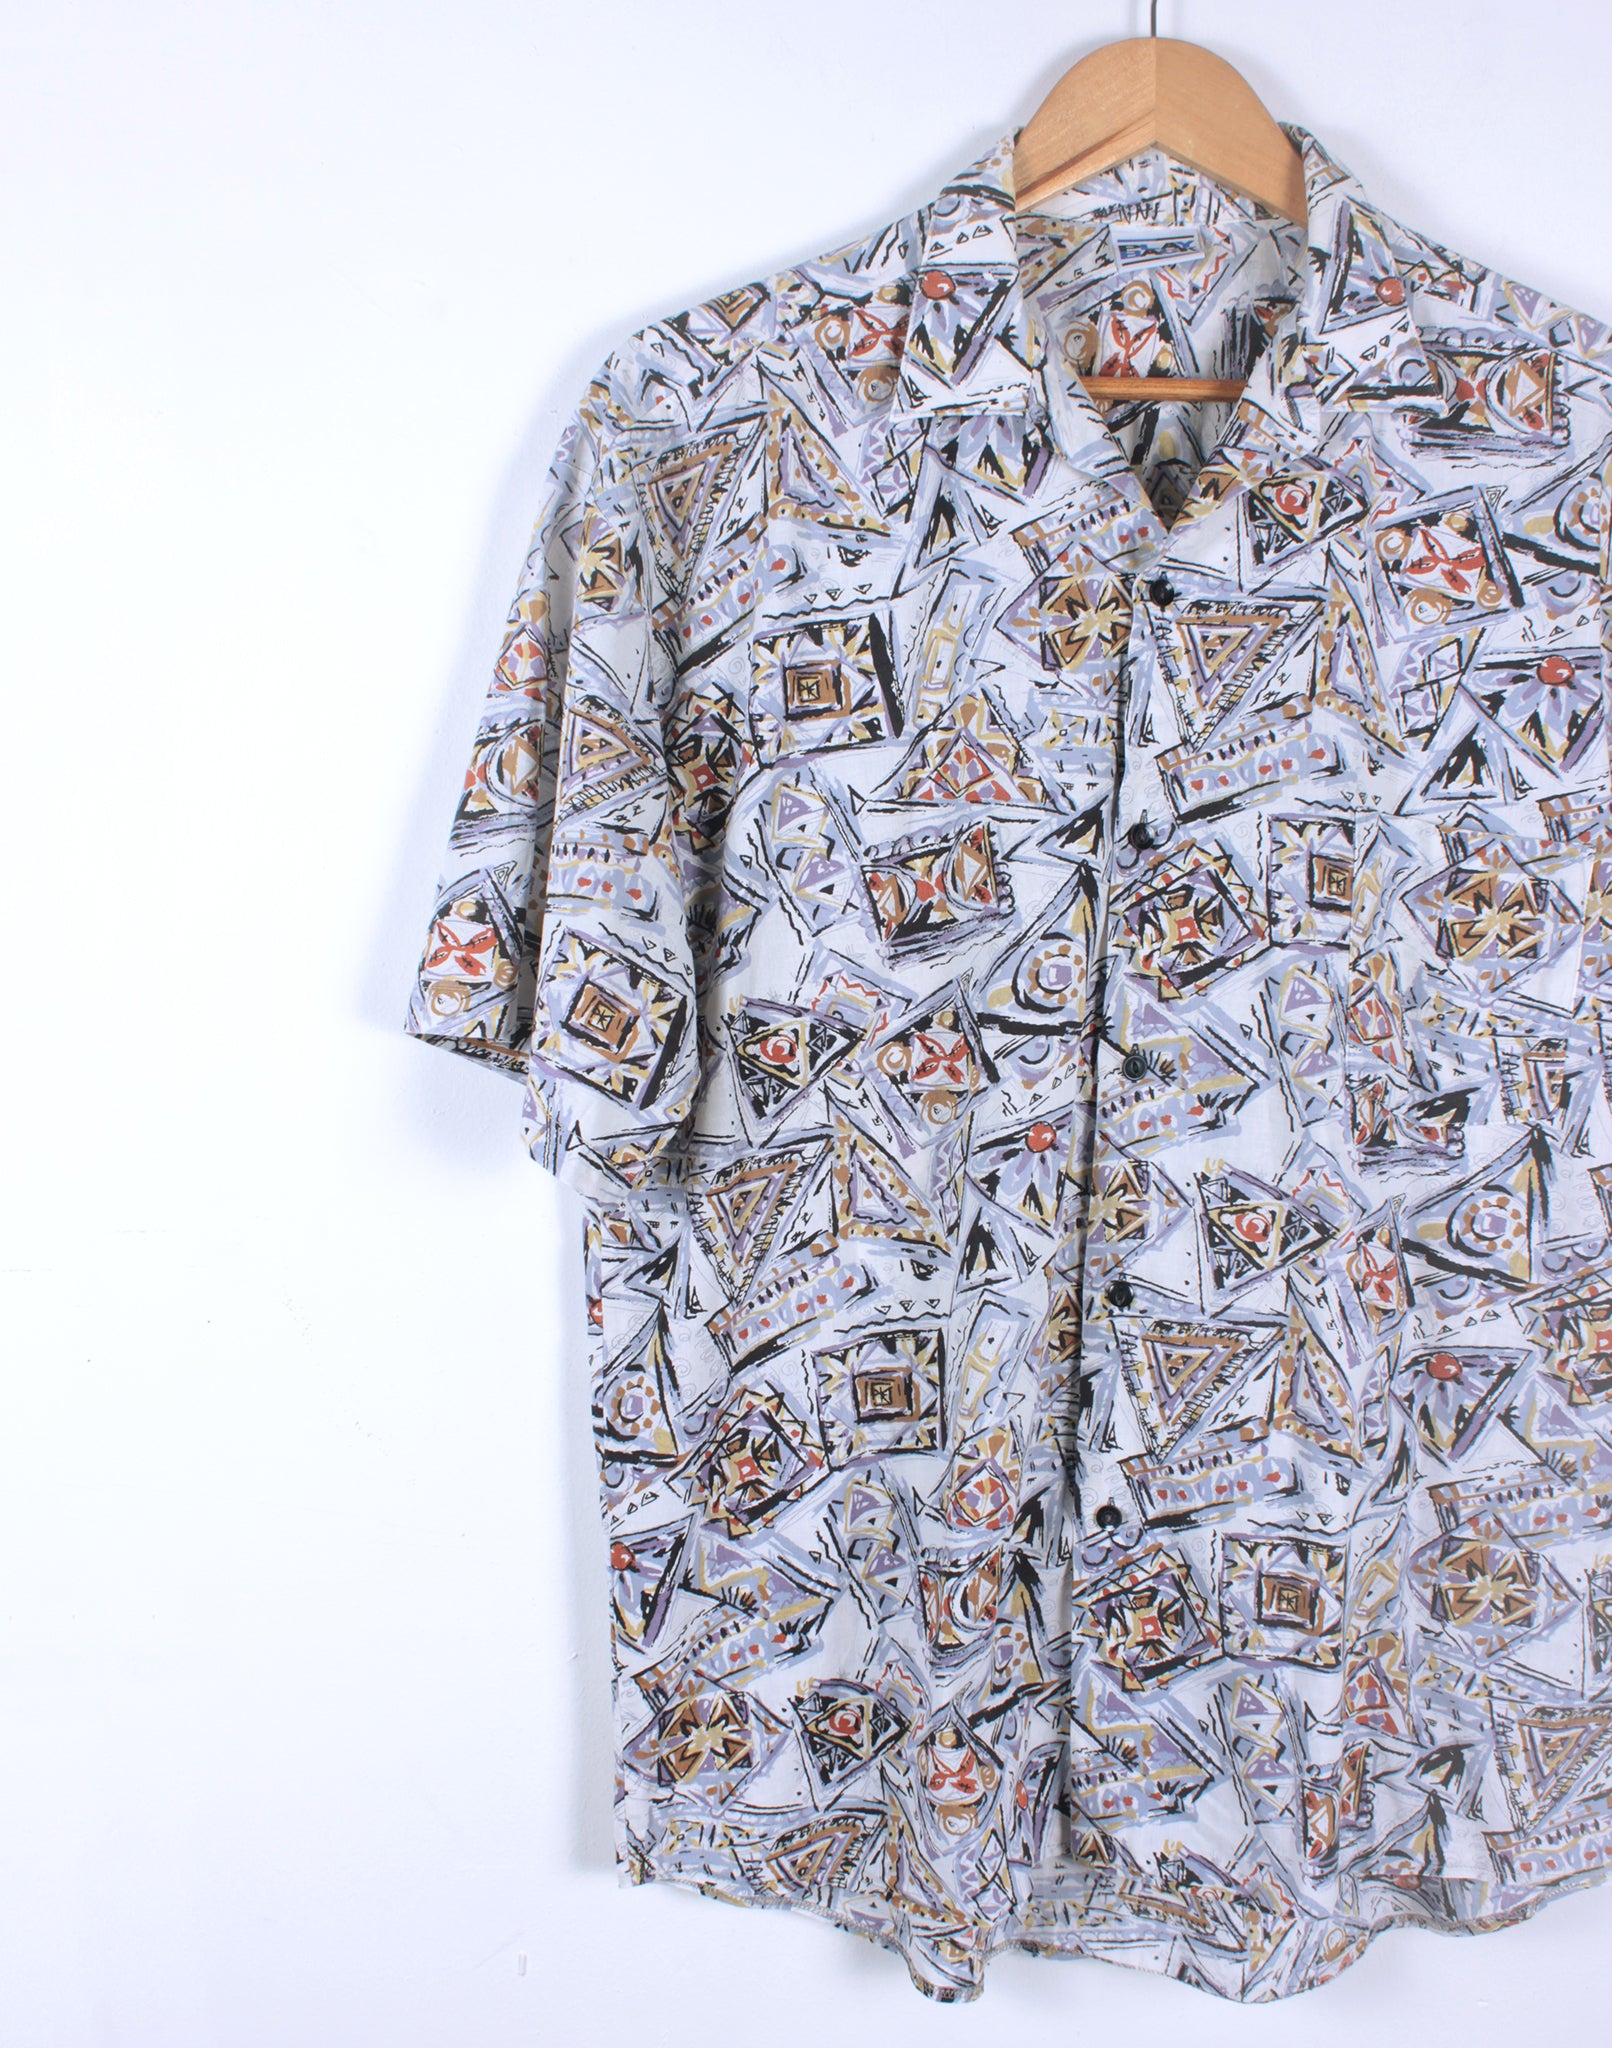 Vintage 80's Oversize Playback Graphic Shirt